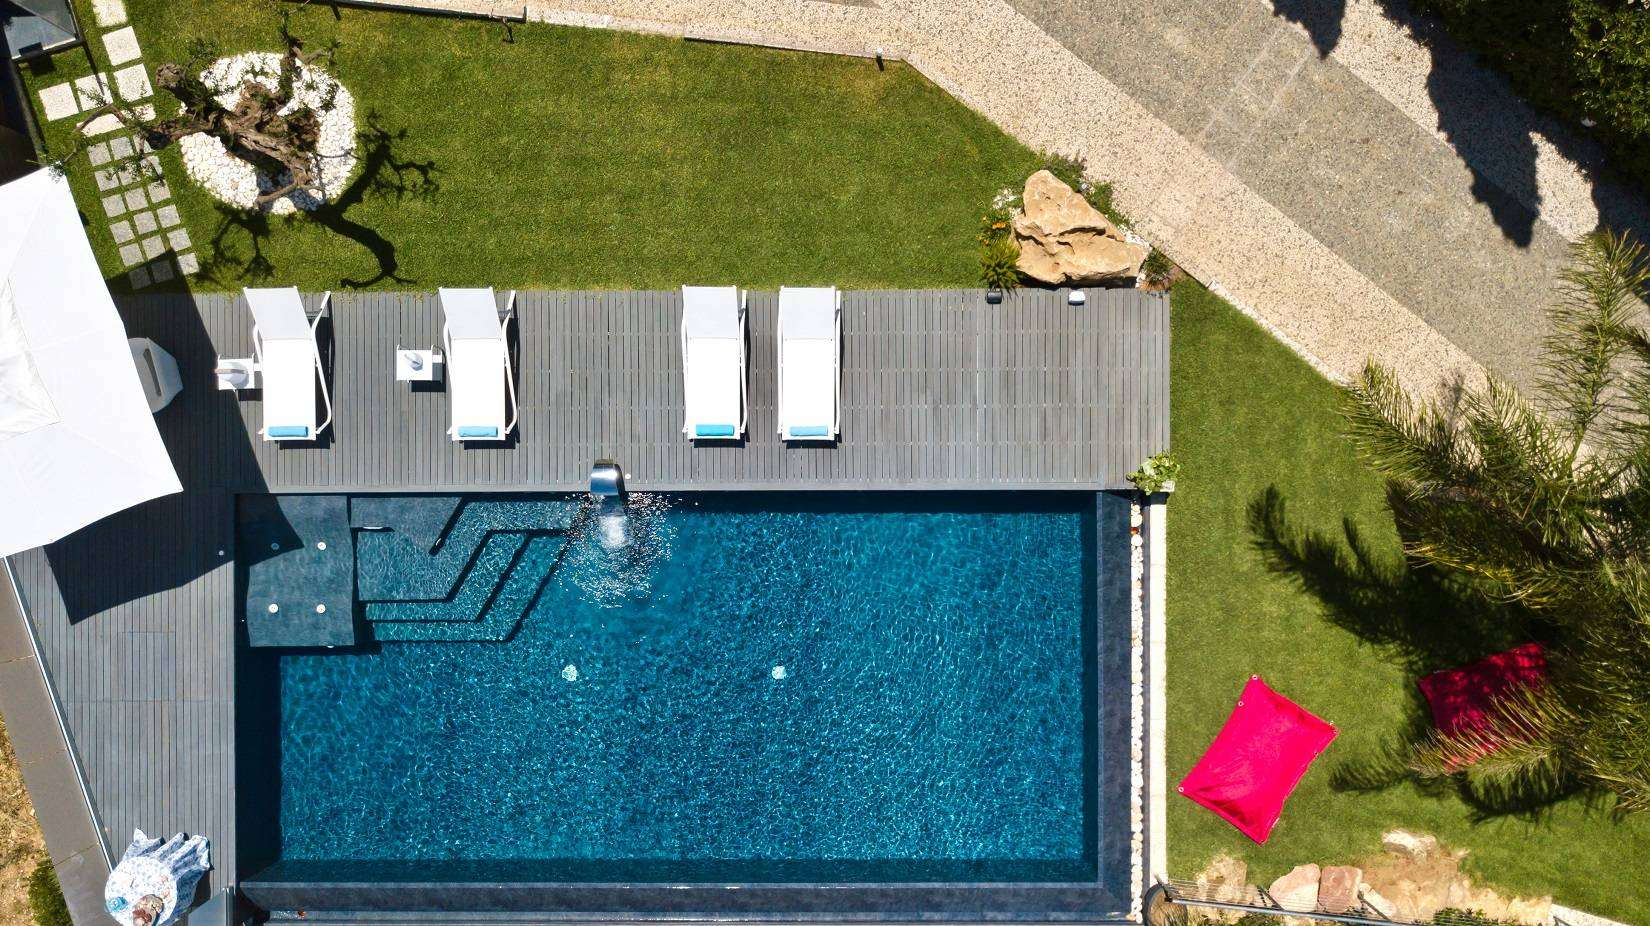 2 Infinity Pool Drone View